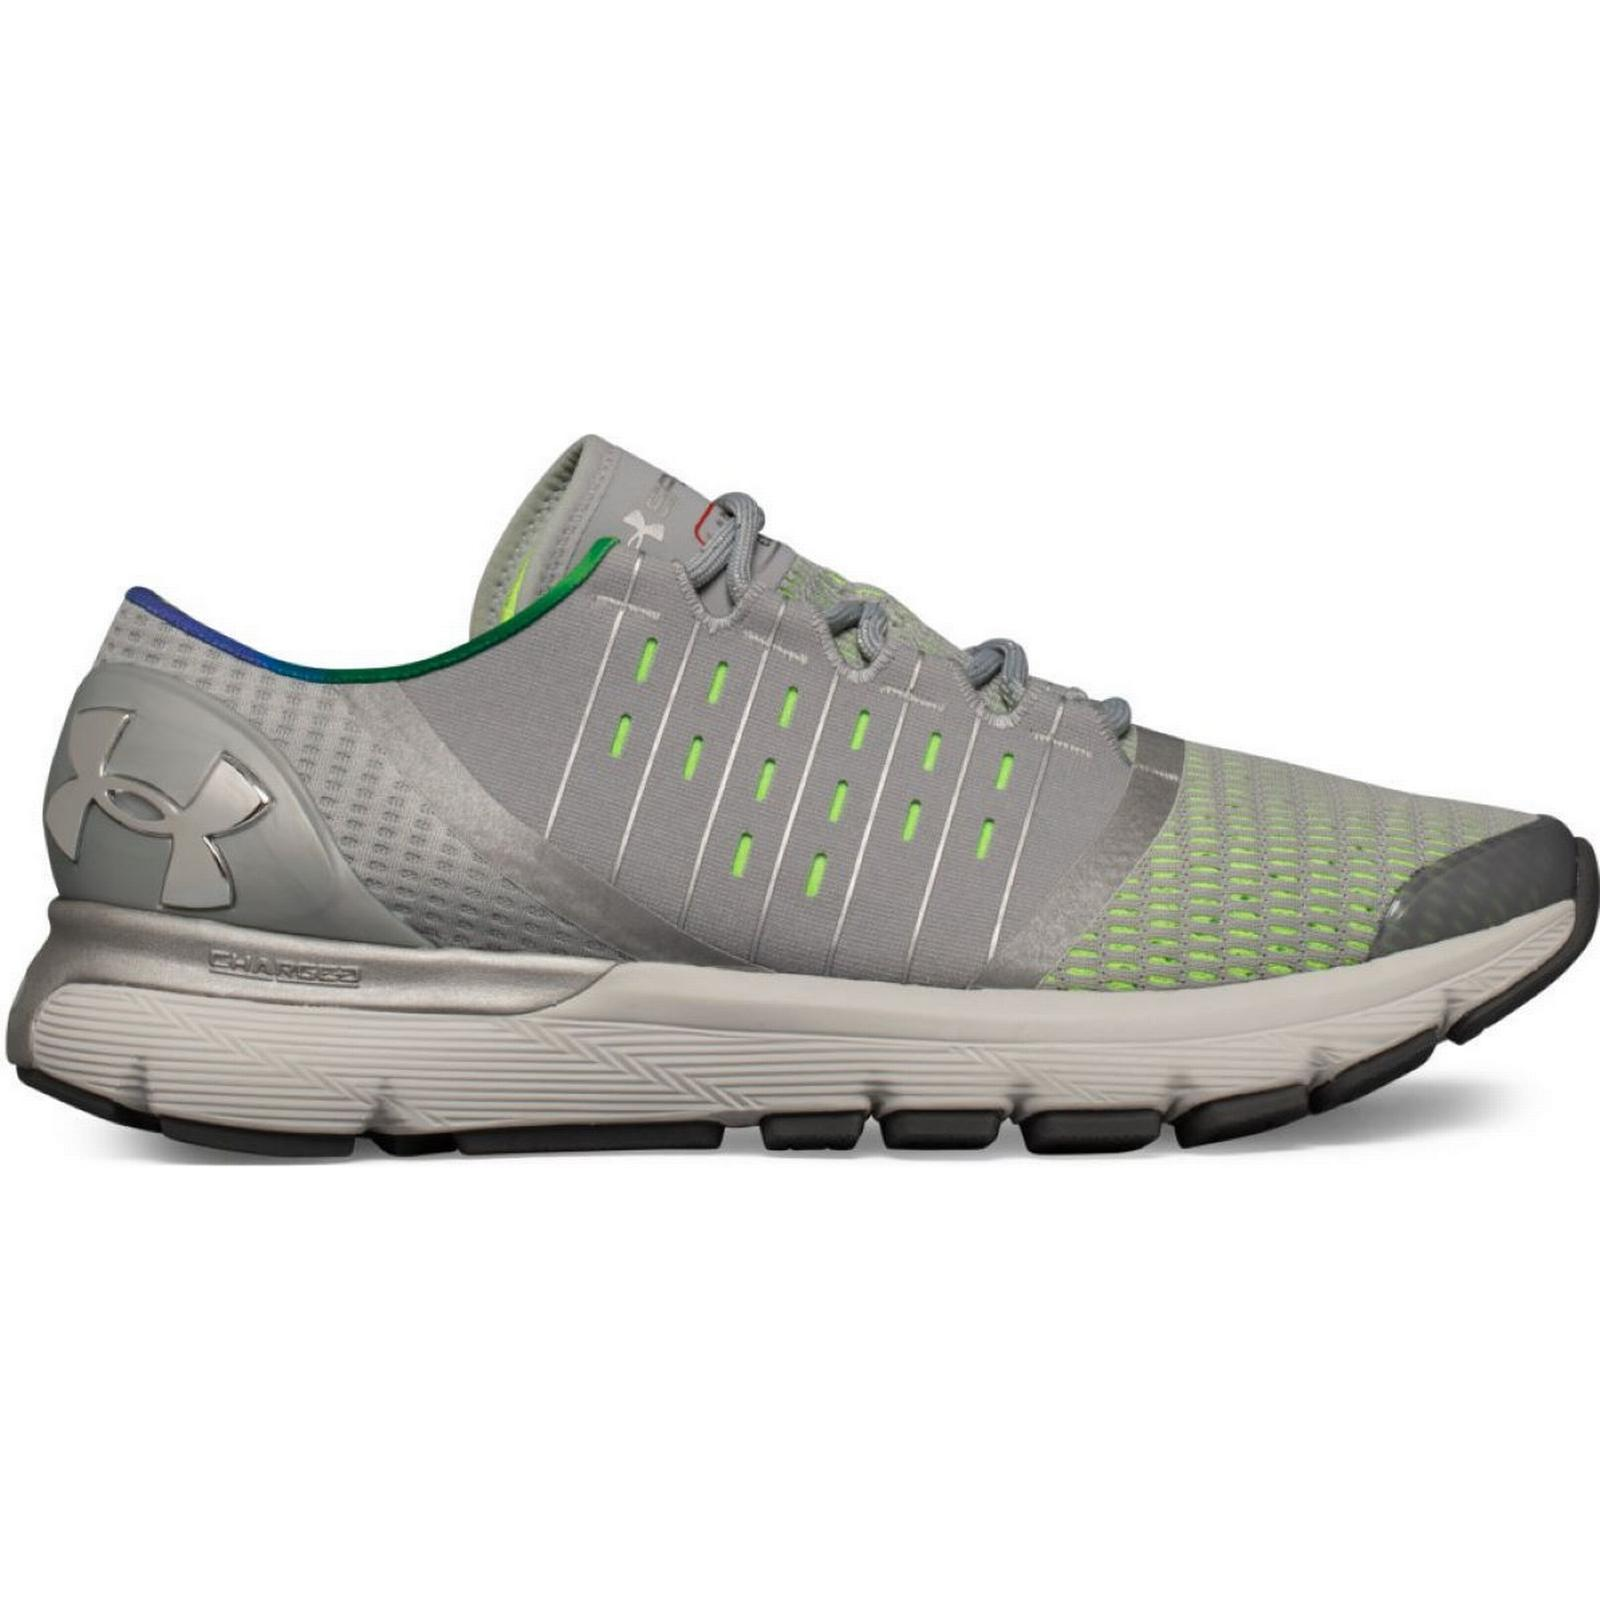 Wiggle Online Cycle Shop Under Armour Speedform Running Europa RE Run Shoes Running Speedform Shoes 067834